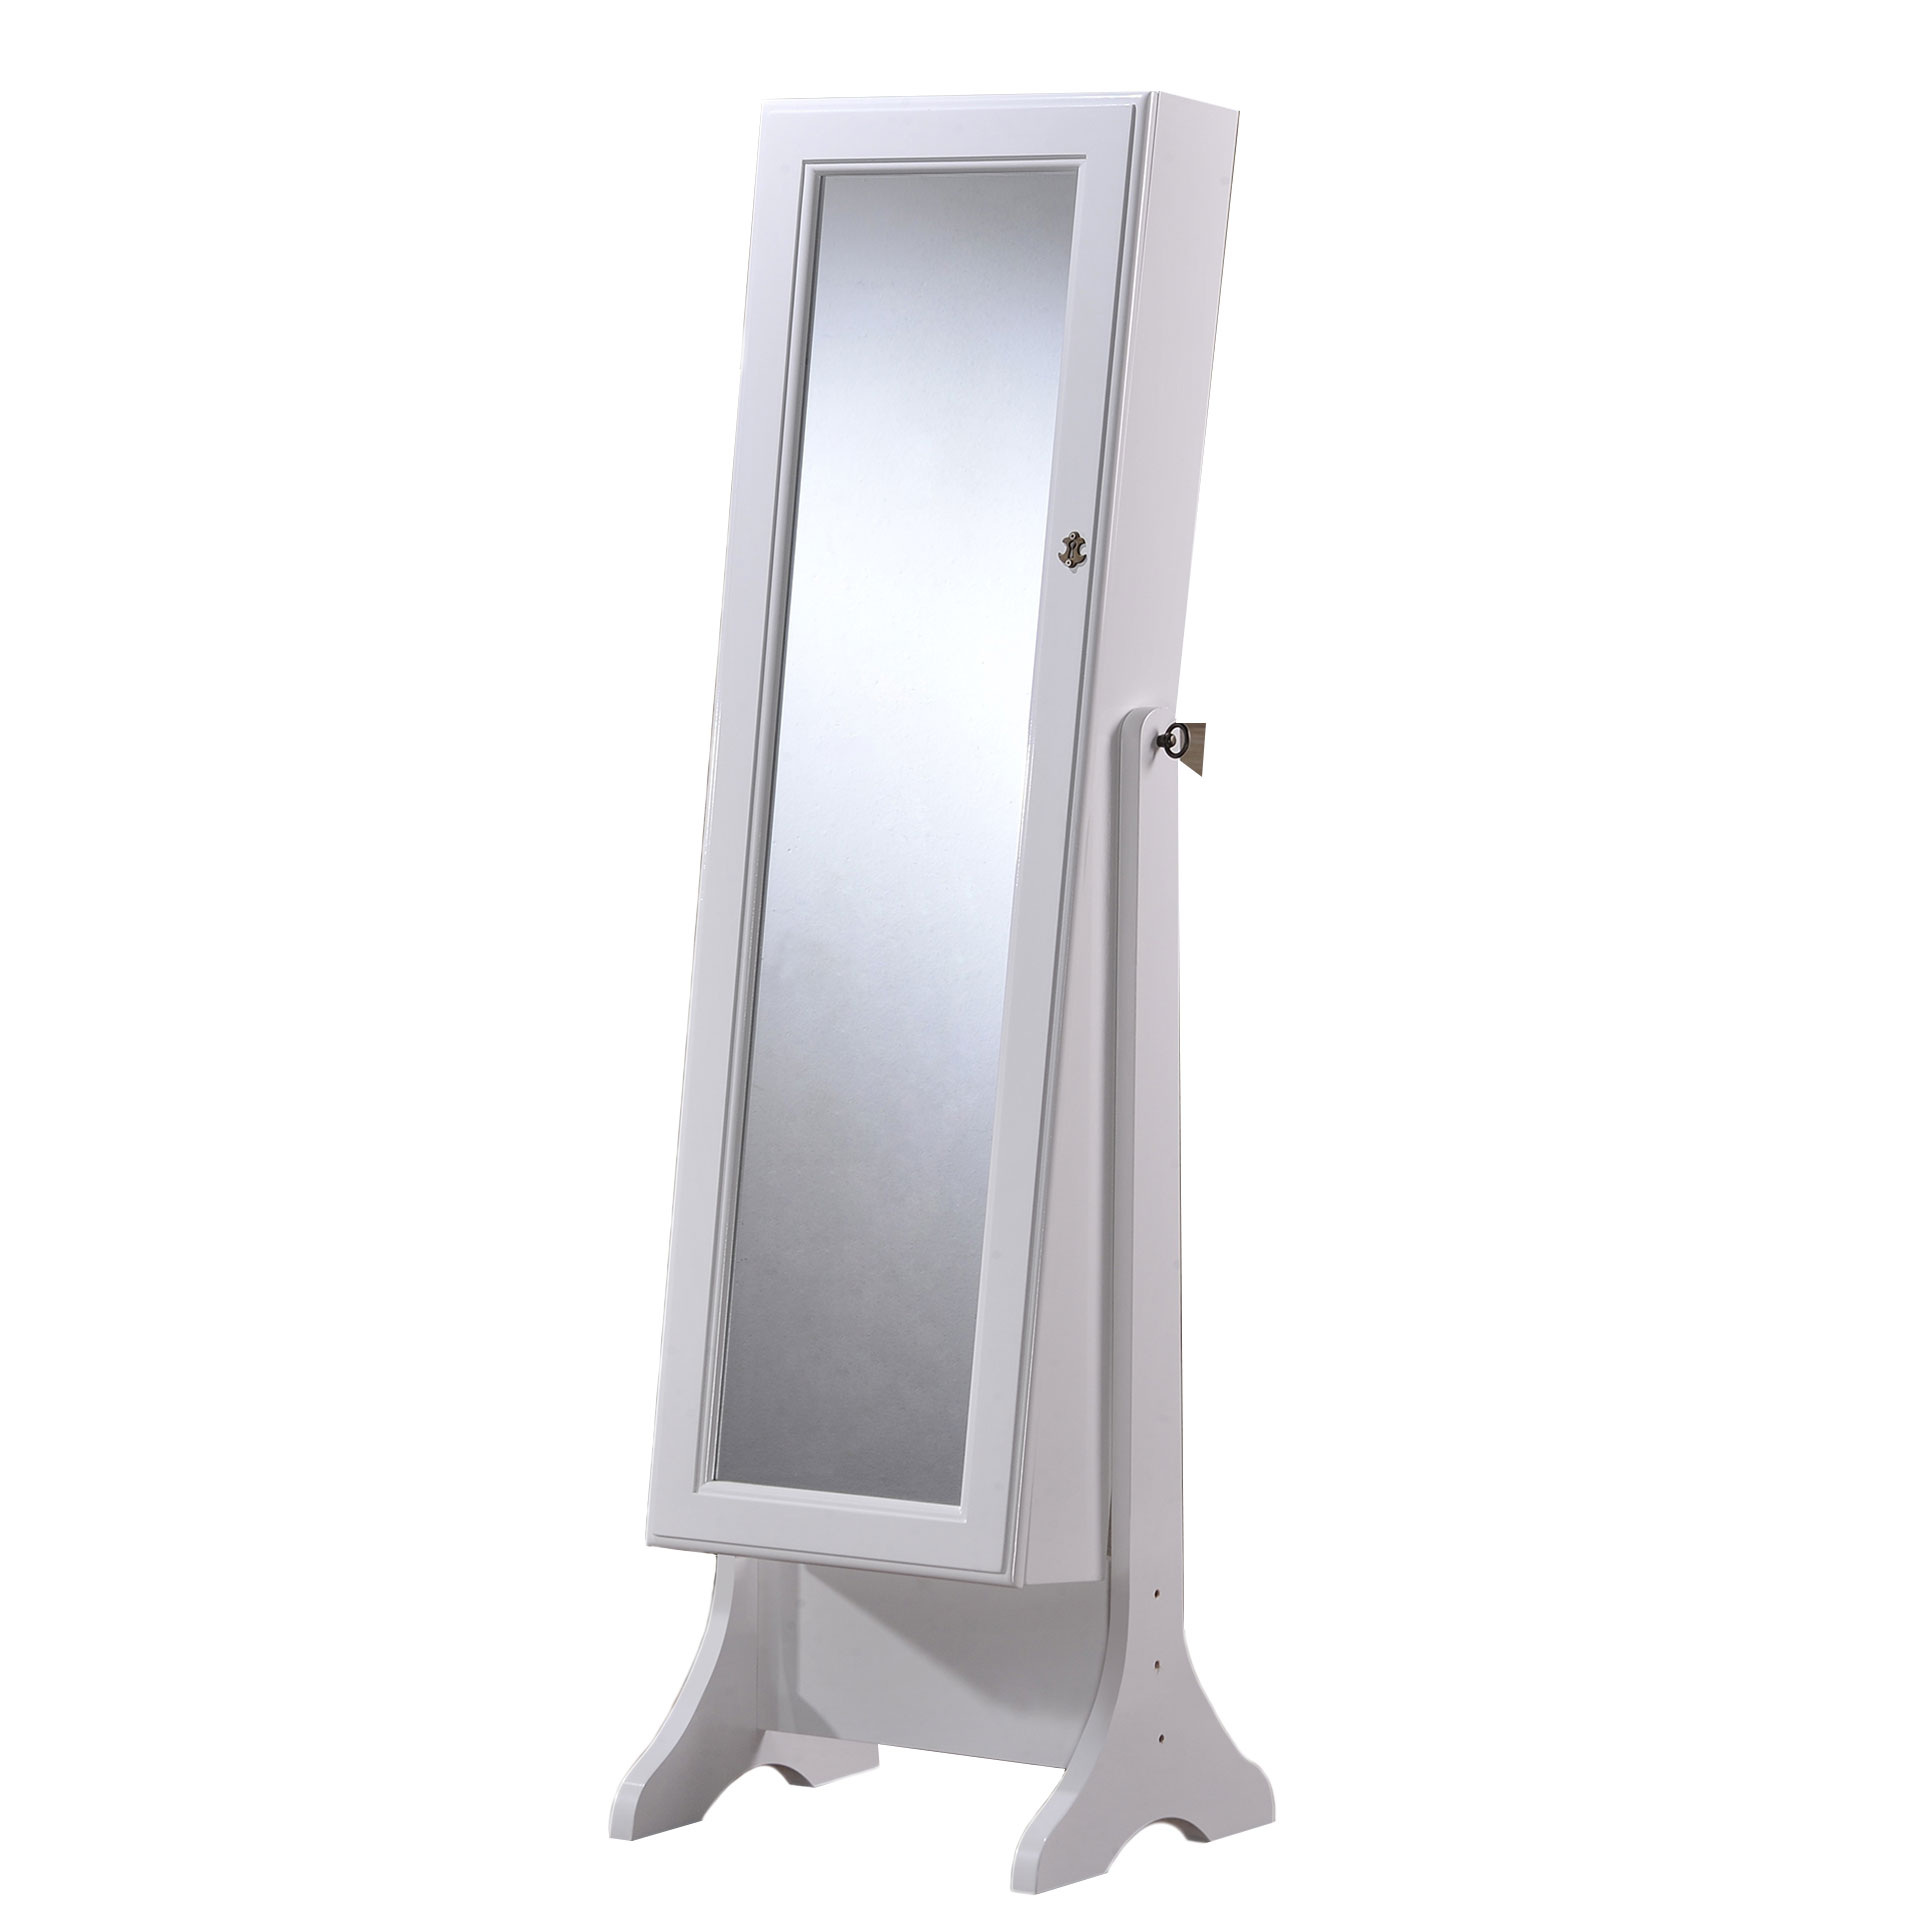 Furniture stores in manila philippines - Roxanne Full Body Mirror Cabinet Furniture Store Manila Philippines Urban Concepts